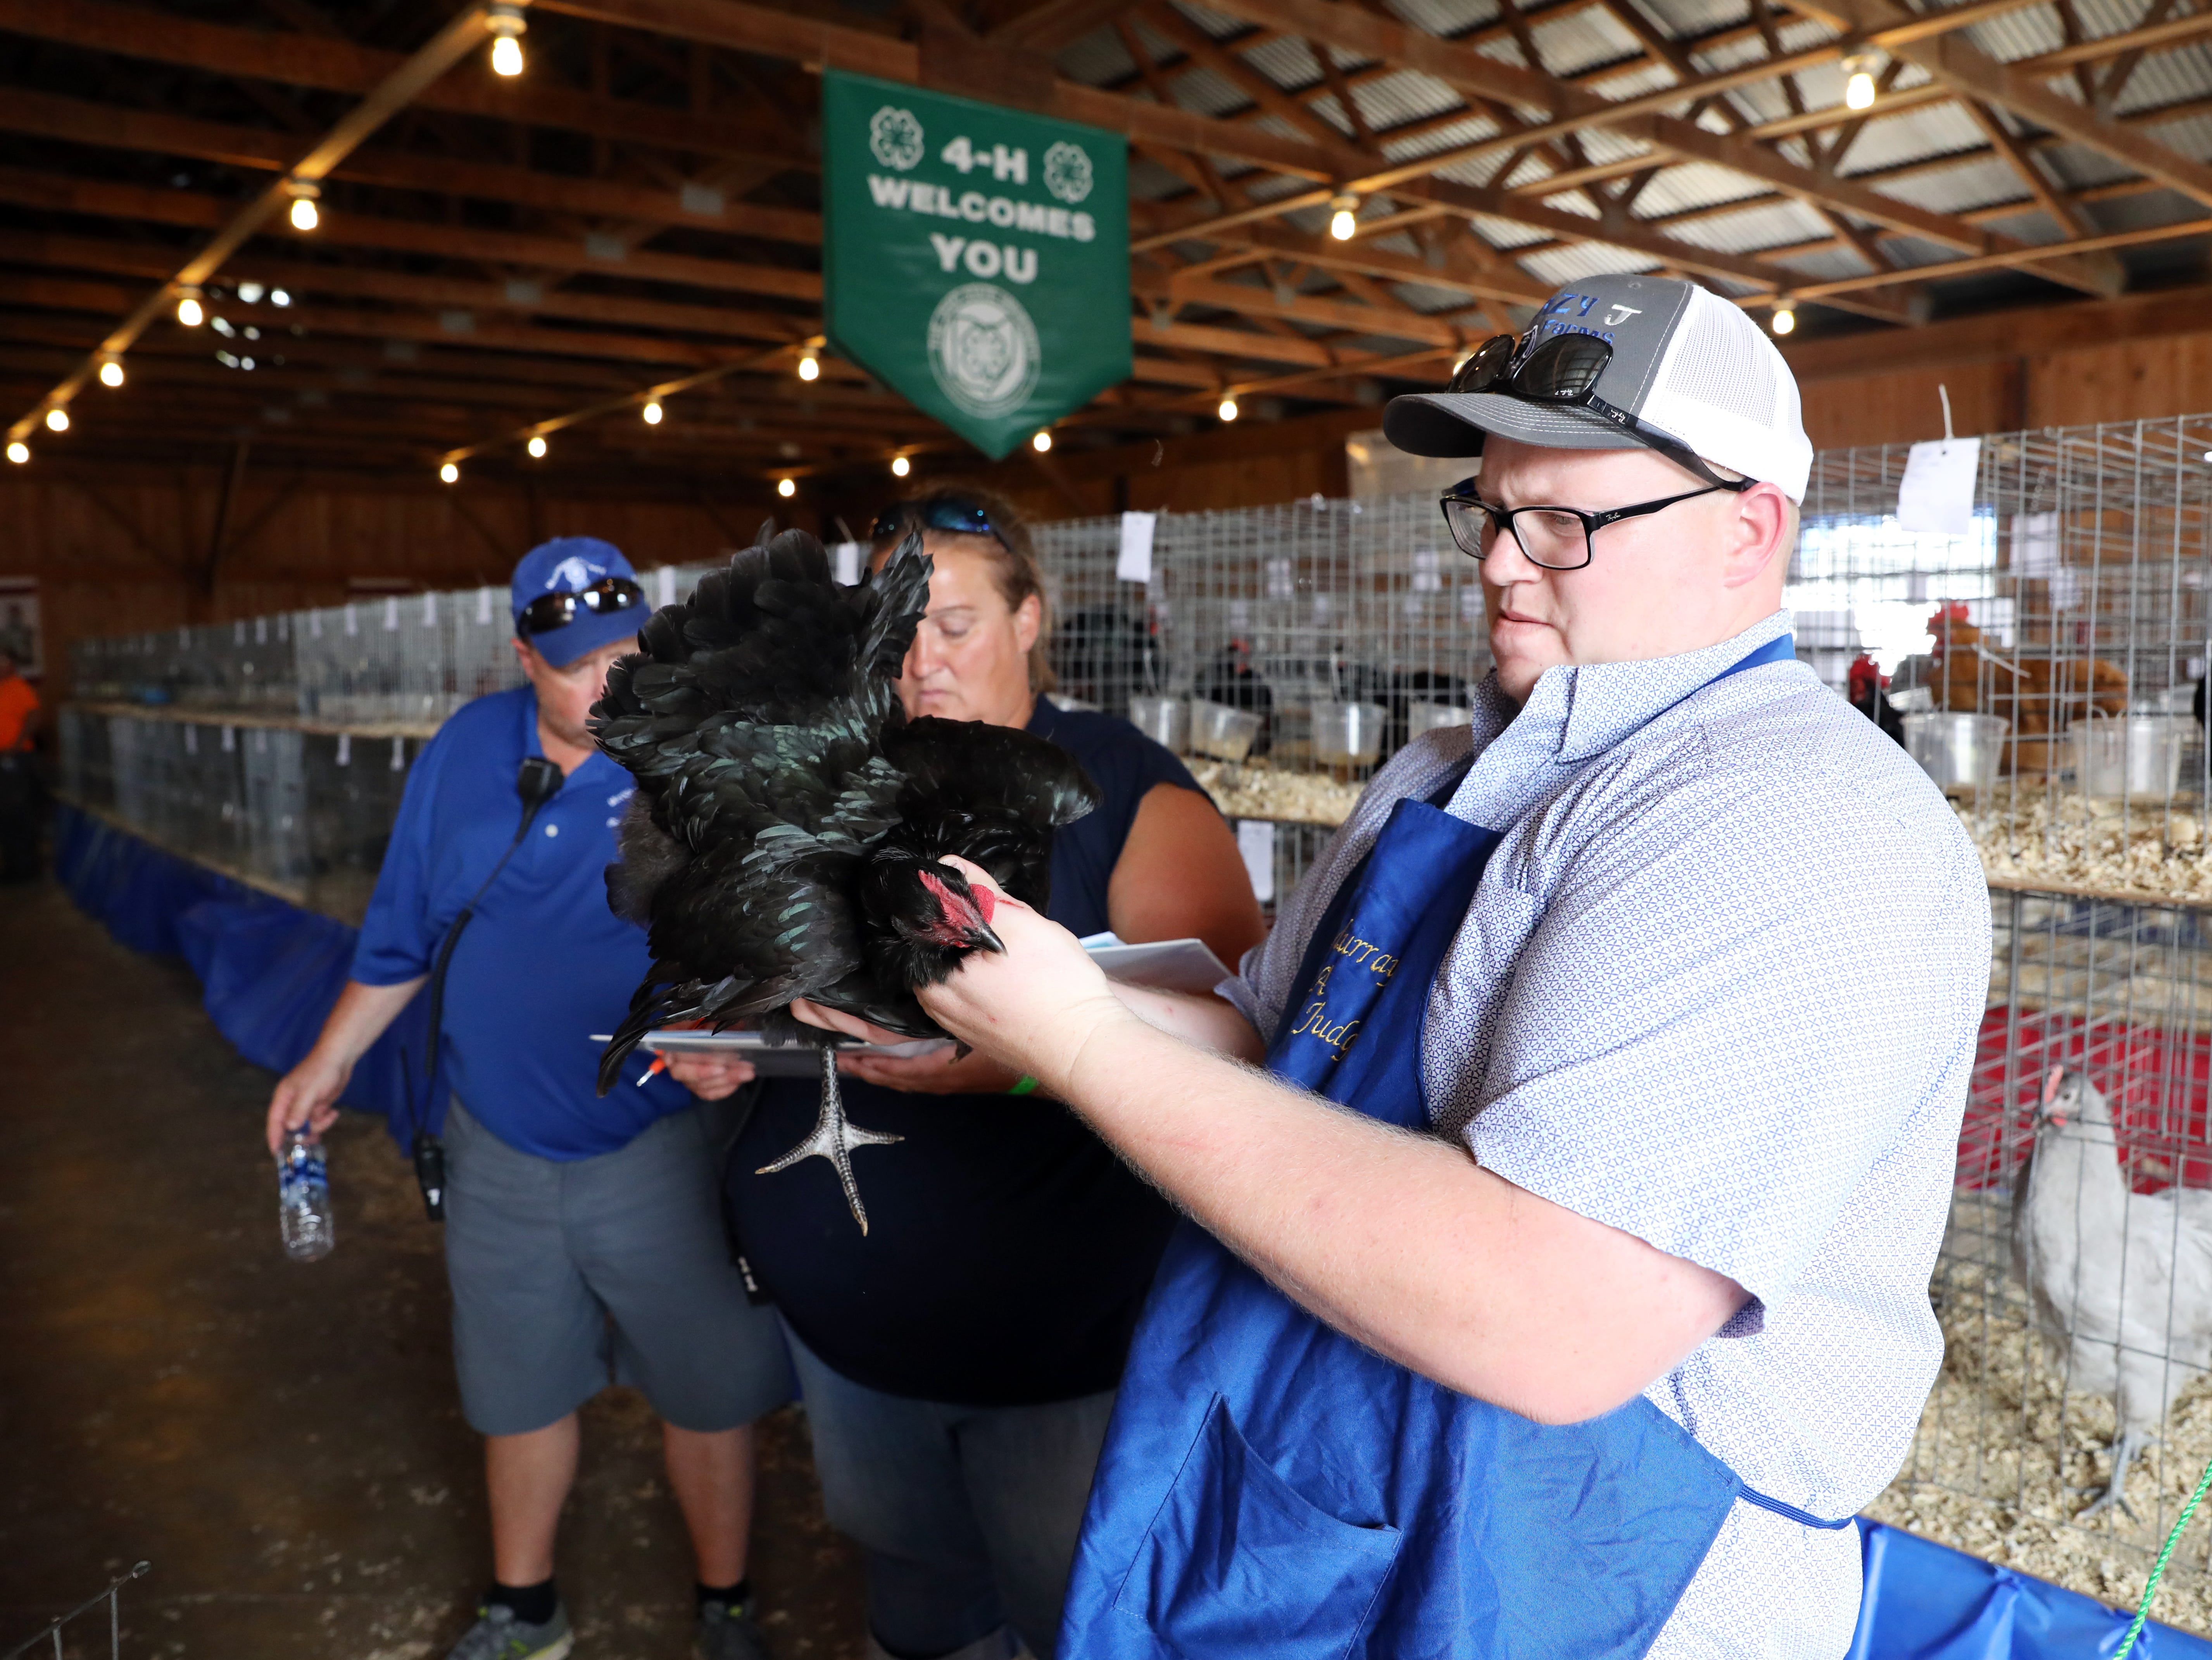 Poultry judging took place on Wednesday at the Muskingum County Blue Ribbon Fair.